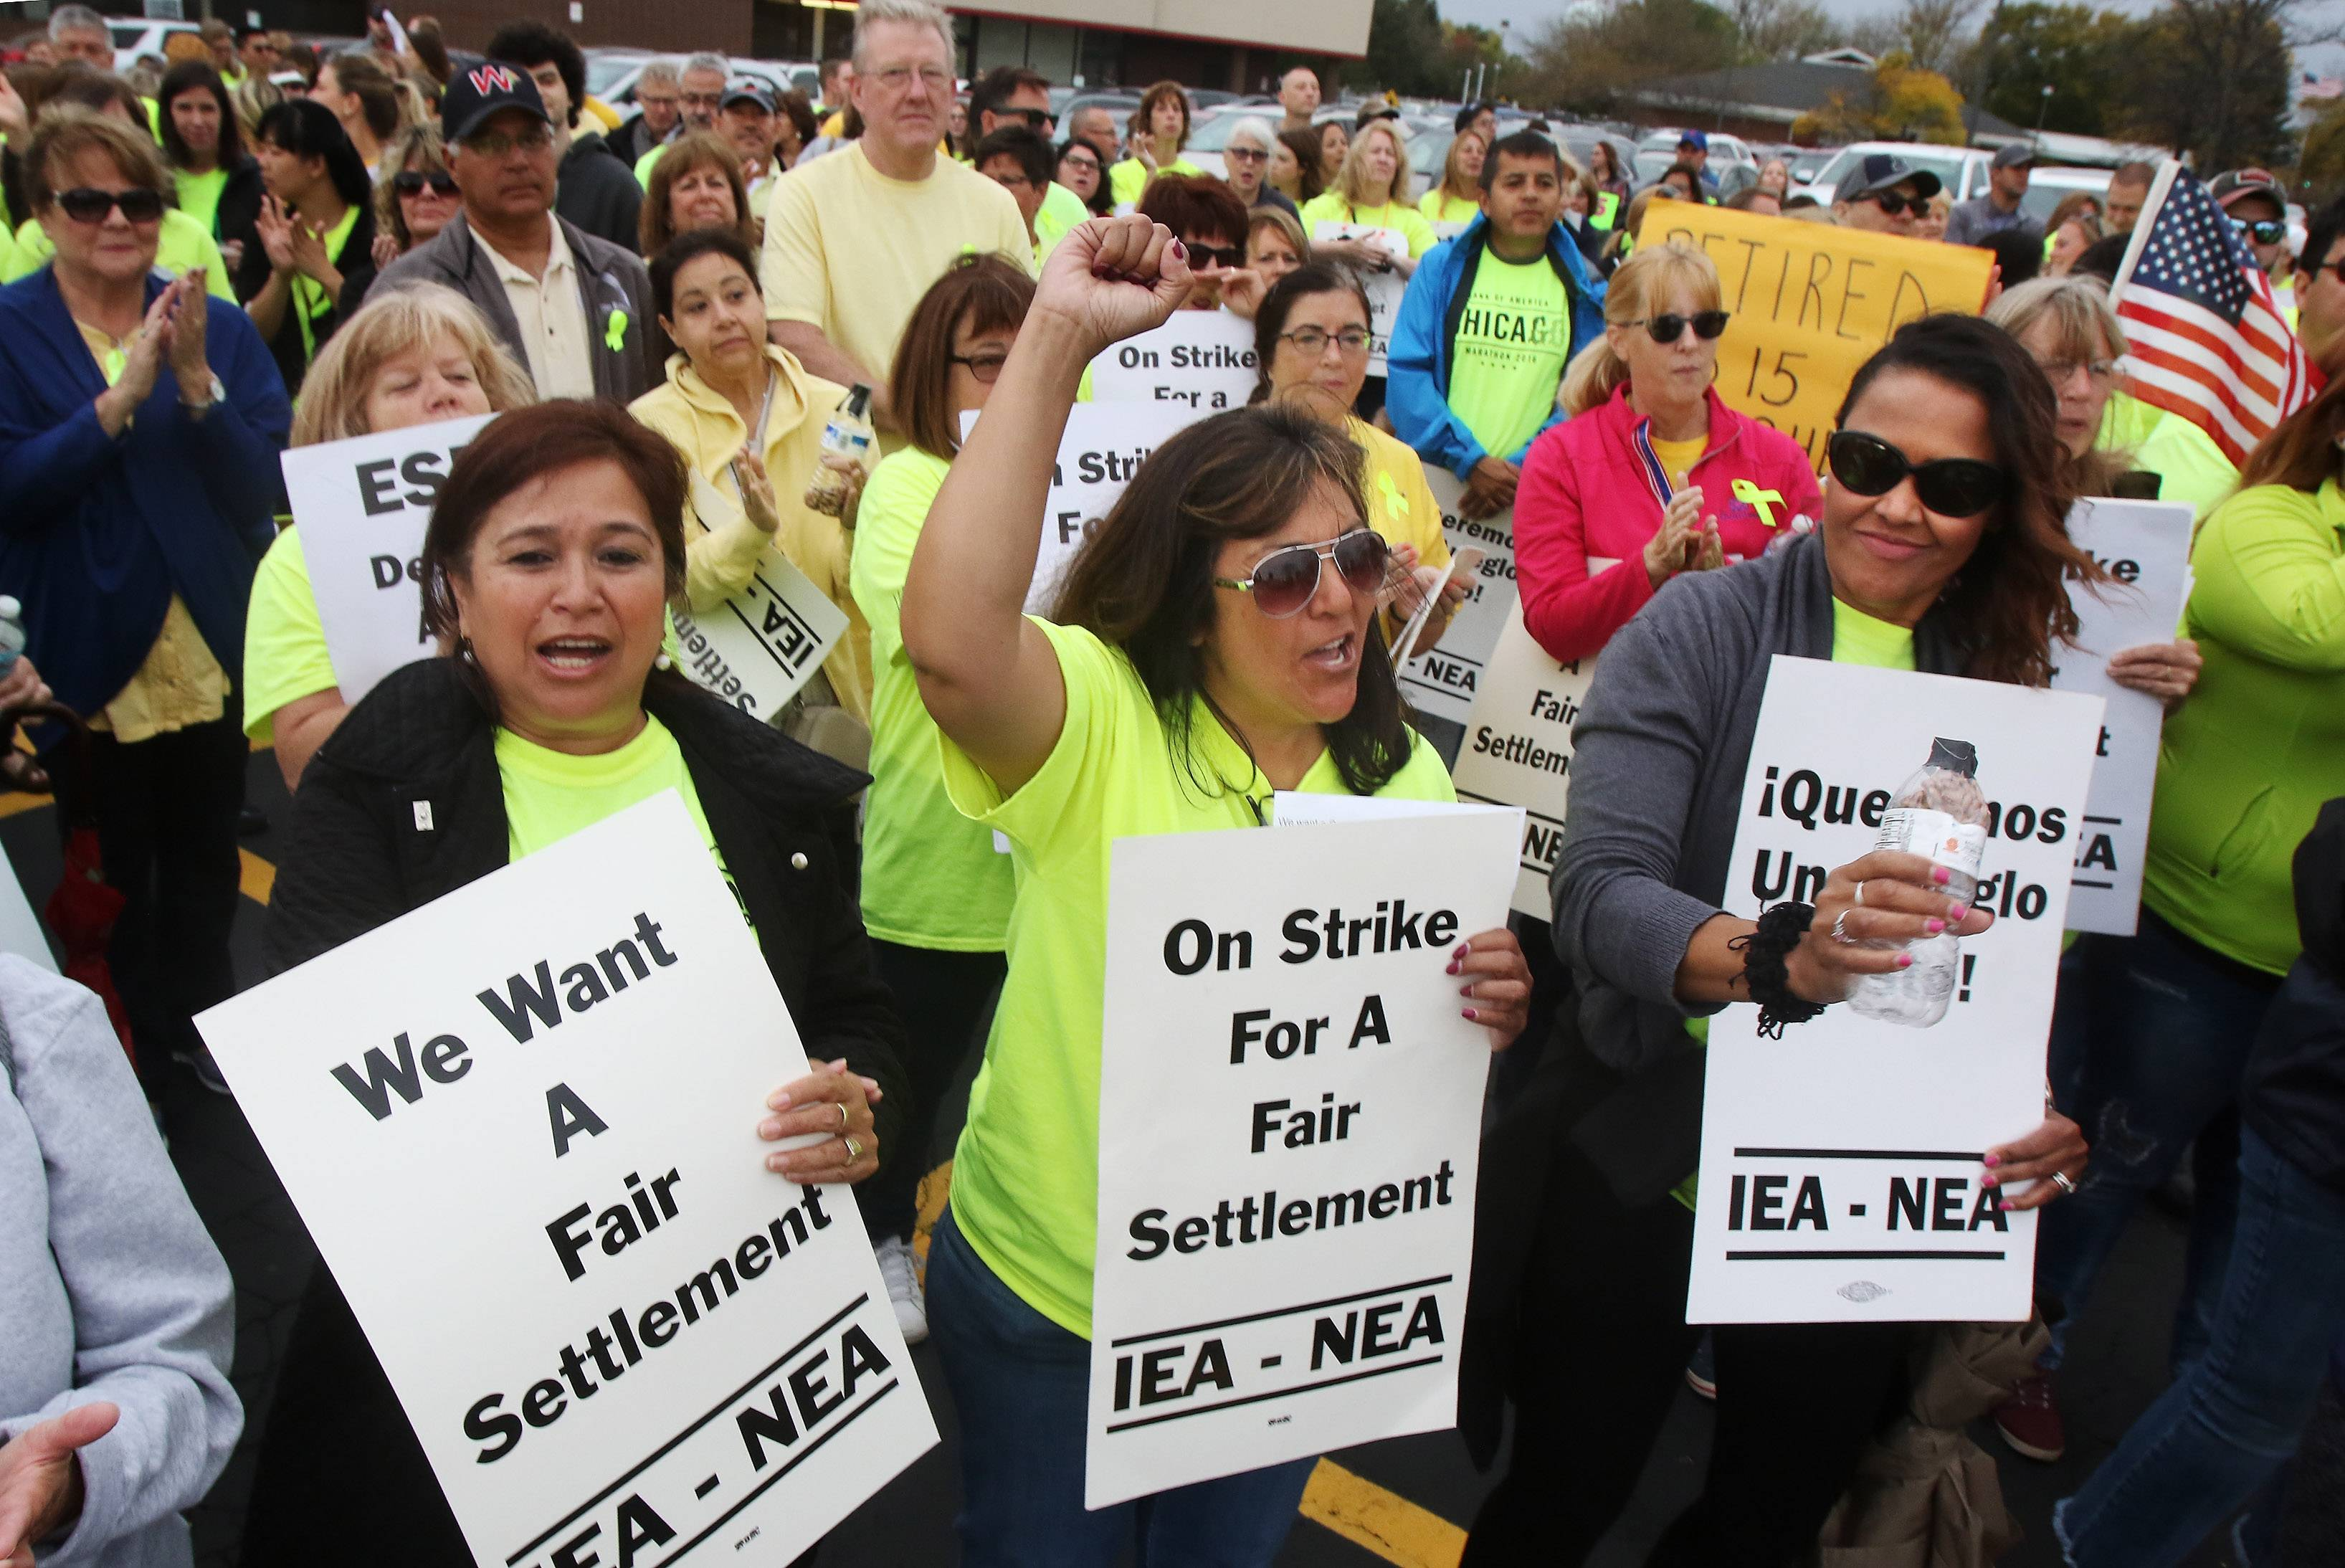 Catalina Aragon, front left, Yolanda Gilchrist and Inez Ramirez chant during a rally Sunday by Palatine Township Elementary District 15's Educational Support Personnel Association union members in a village parking lot along Northwest Highway. At least 500 picketers walked to District 15 administrative headquarters across the street before the start of a bargaining session.